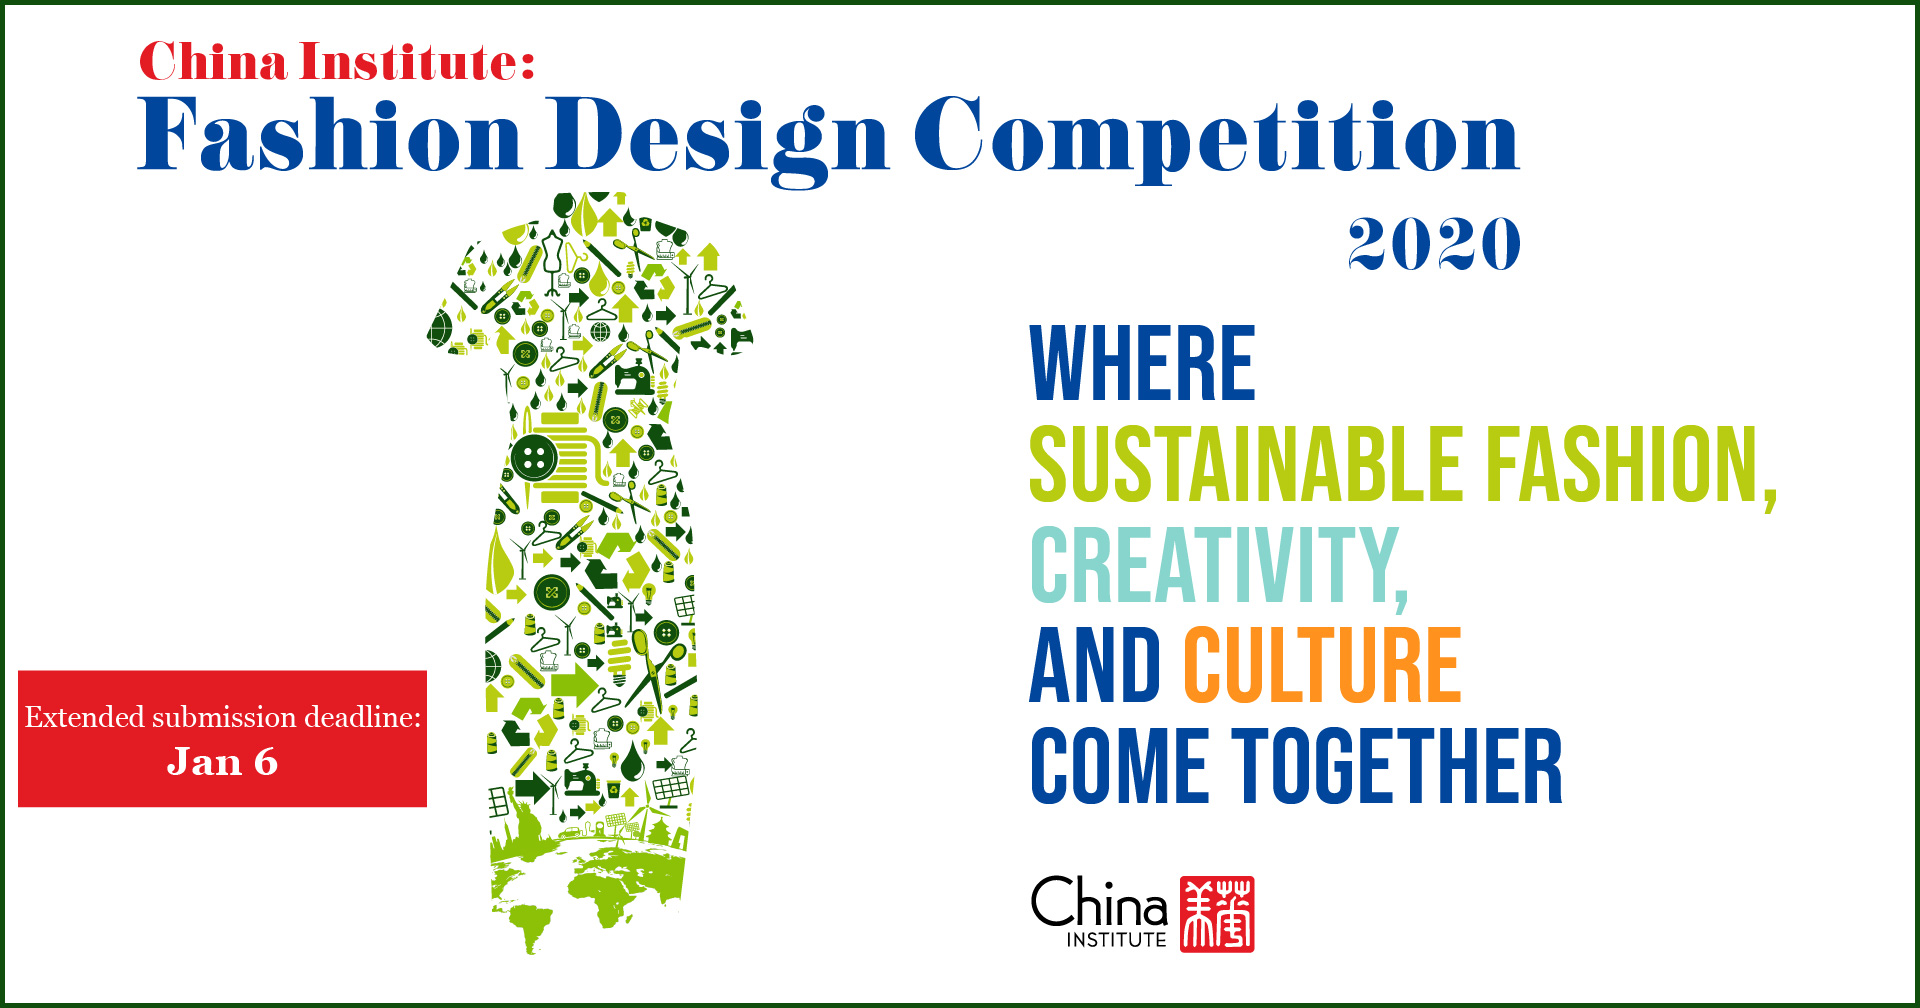 2020 Fashion Design Competition China Institute